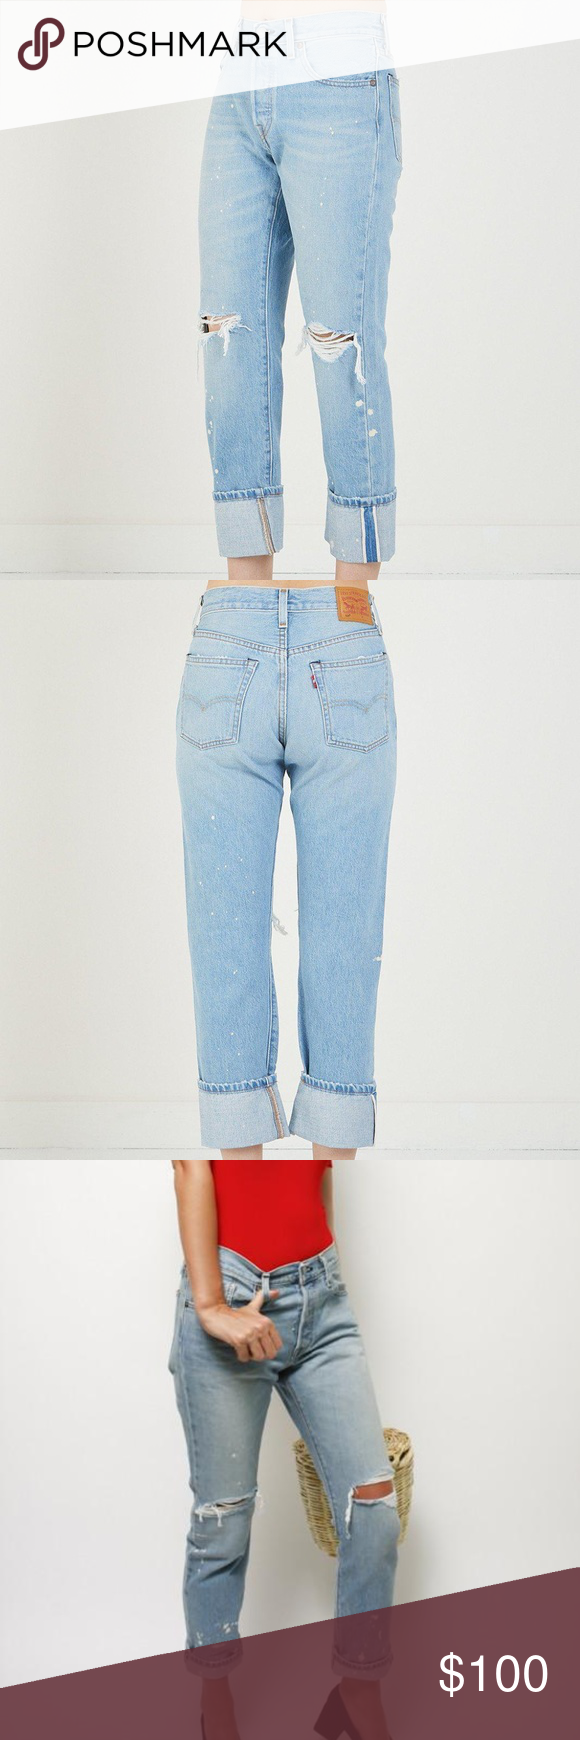 ba369ebf2854 Levi's 501 Selvedge Jeans Explicit Lyrics Wash New with tags 501 Original  fit sold out everywhere